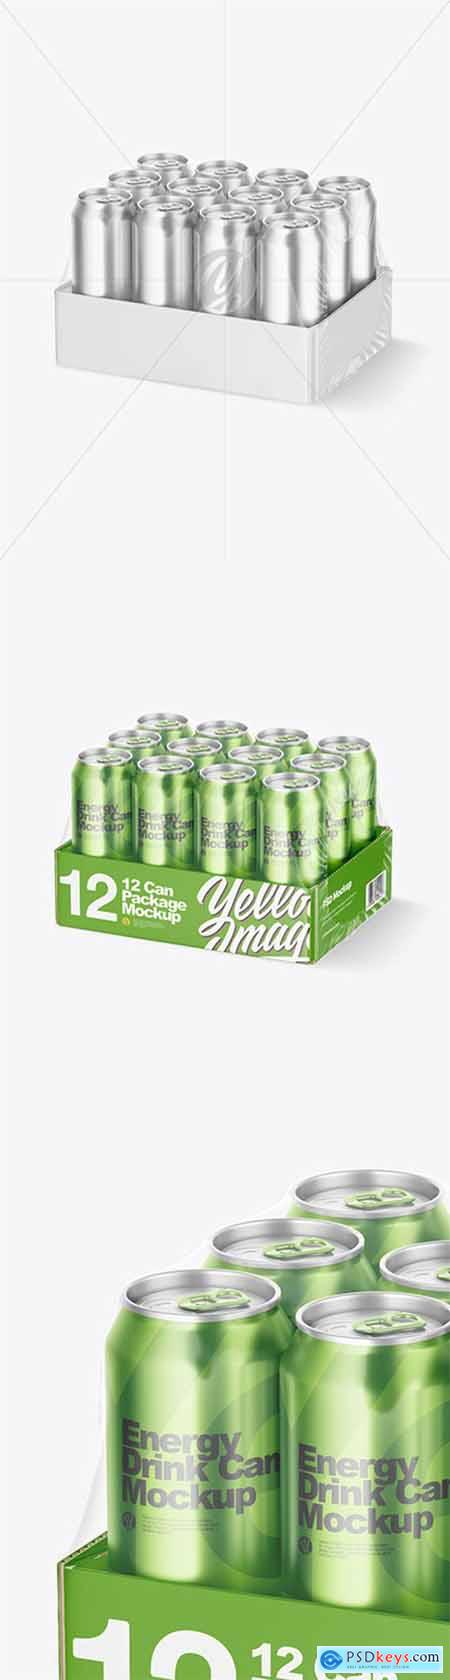 Transparent Pack with 12 Metallic Cans Mockup 63755